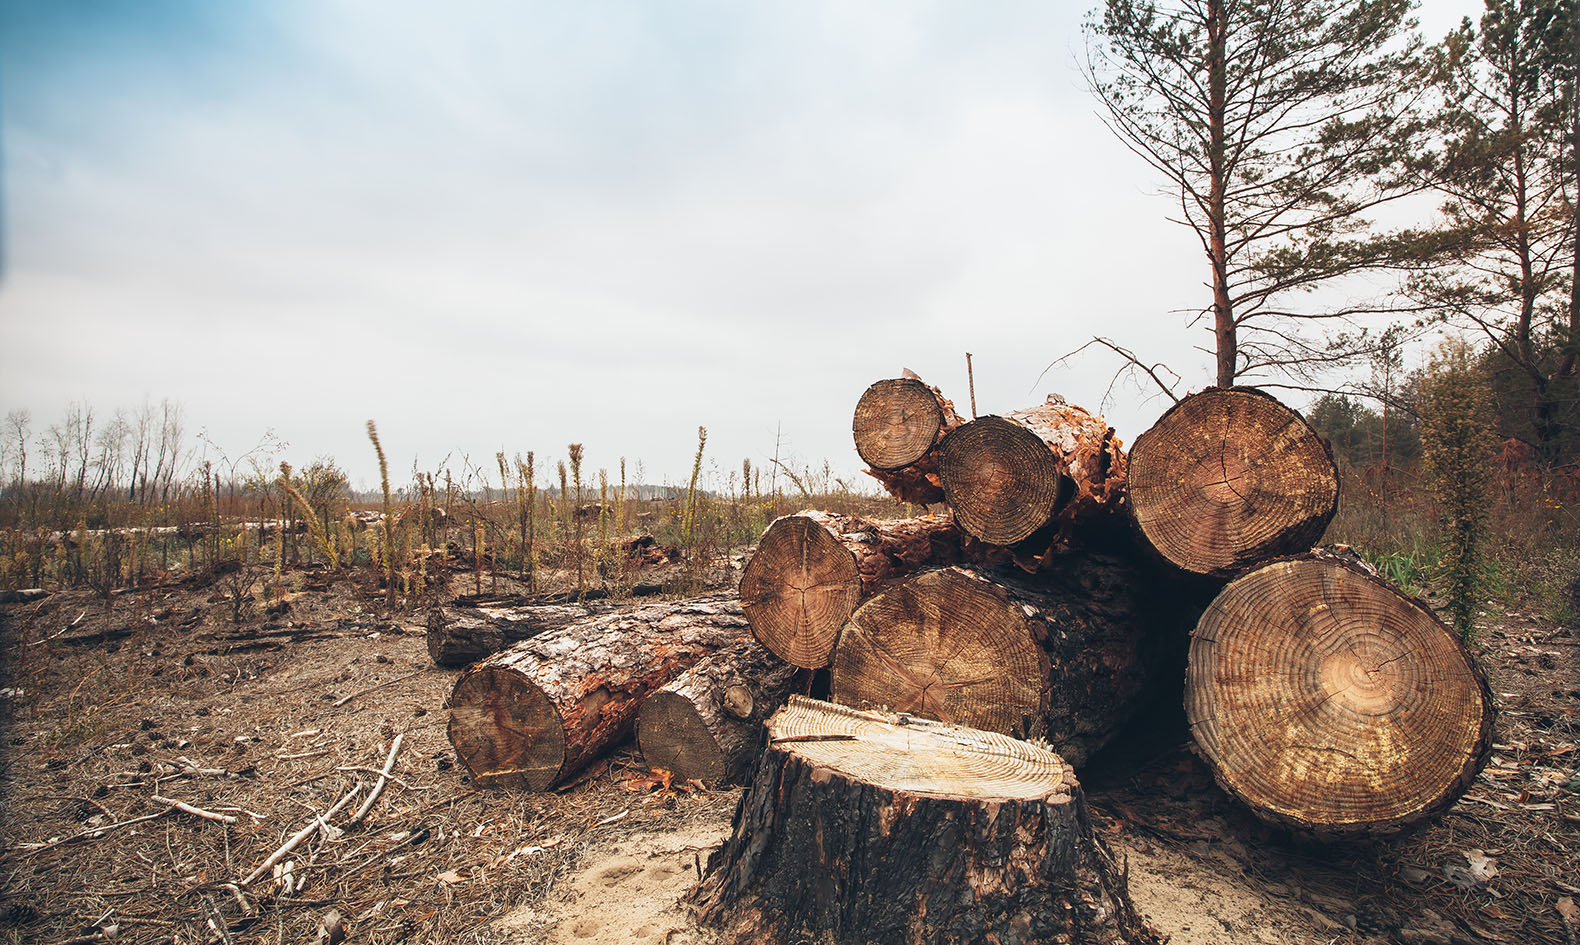 depletion of forests ecological imbalance In this lesson, you will learn the definition of ecological imbalance and explore some examples of ecosystems that have shifted to a state of imbalance test your new knowledge at the end with a quiz.